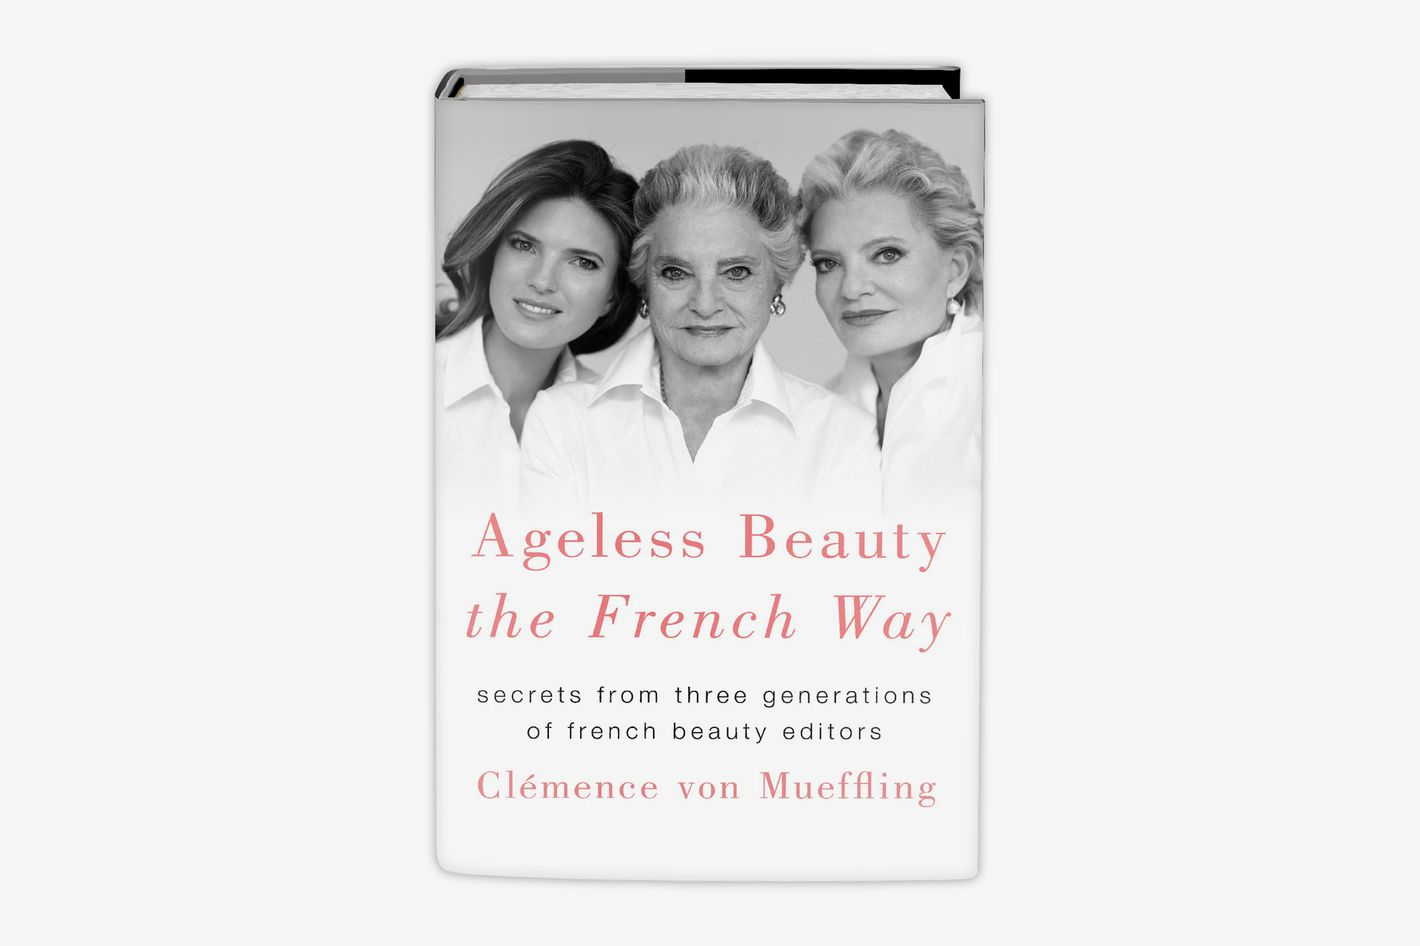 <em>Ageless Beauty the French Way: Secrets from Three Generations of French Beauty Editors</em>, by Clemence von Meuffling